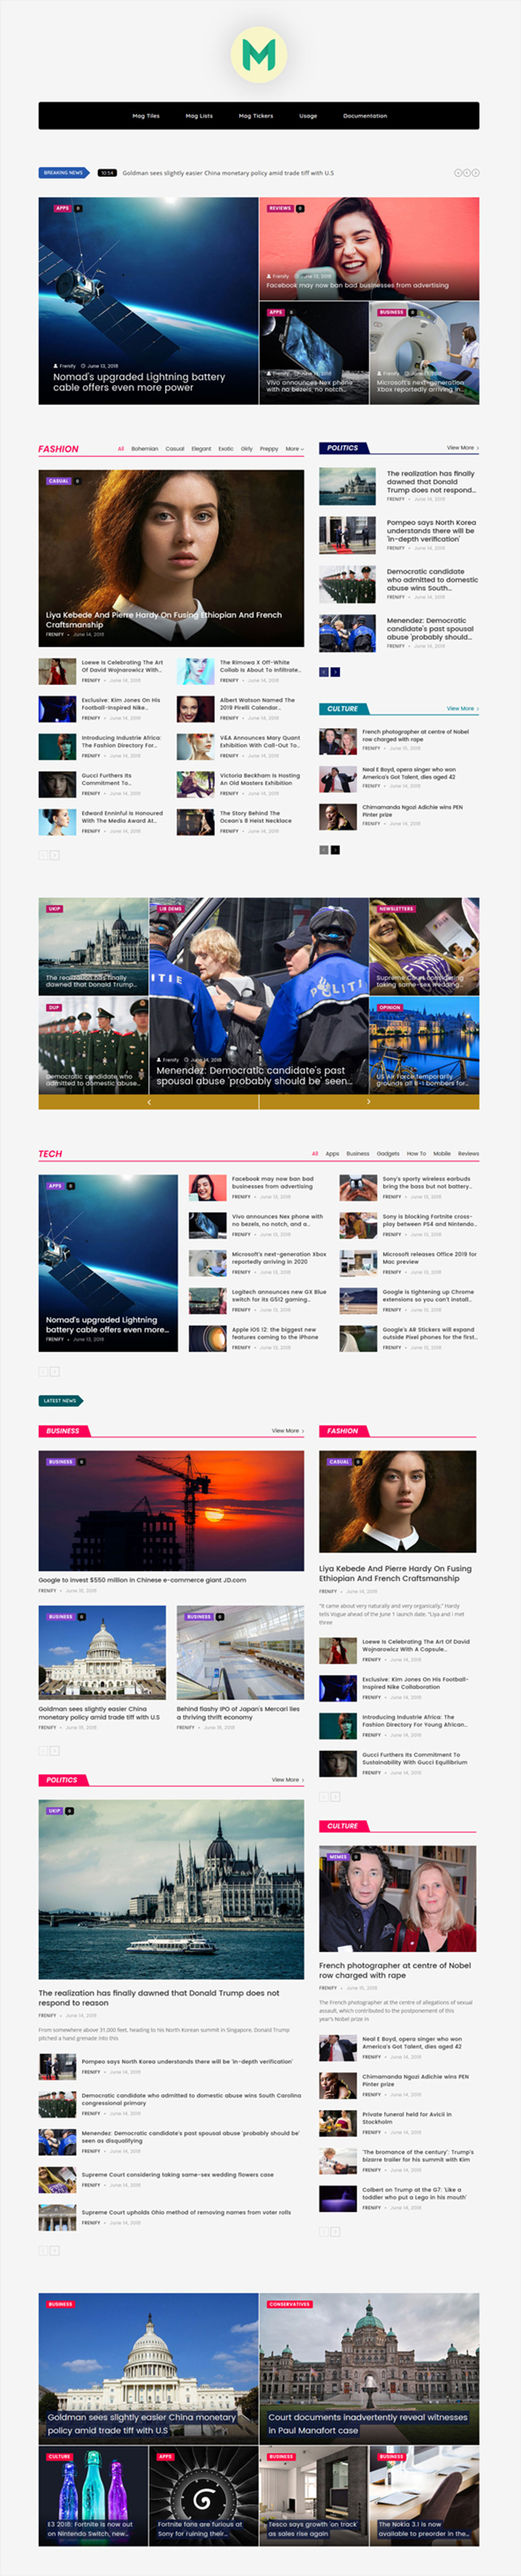 magazinify-news-addon-for-elementor-page-builder-des